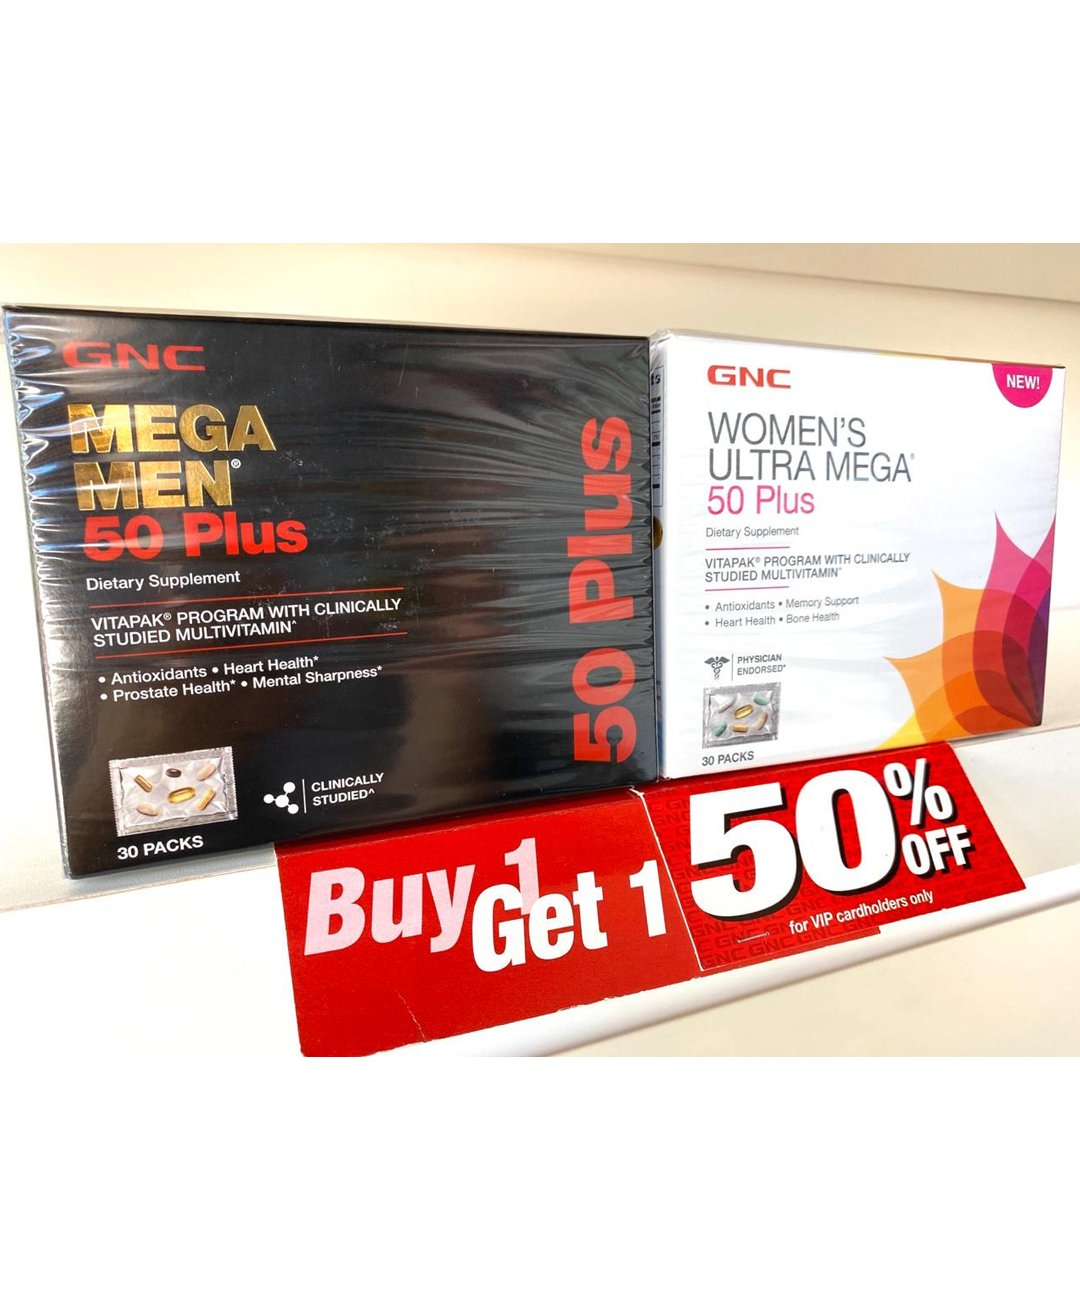 GNC Mega Men 50 Plus Vitapak/Women's Ultra Mega 50 Plus Vitapak BOGO 50% Off Set